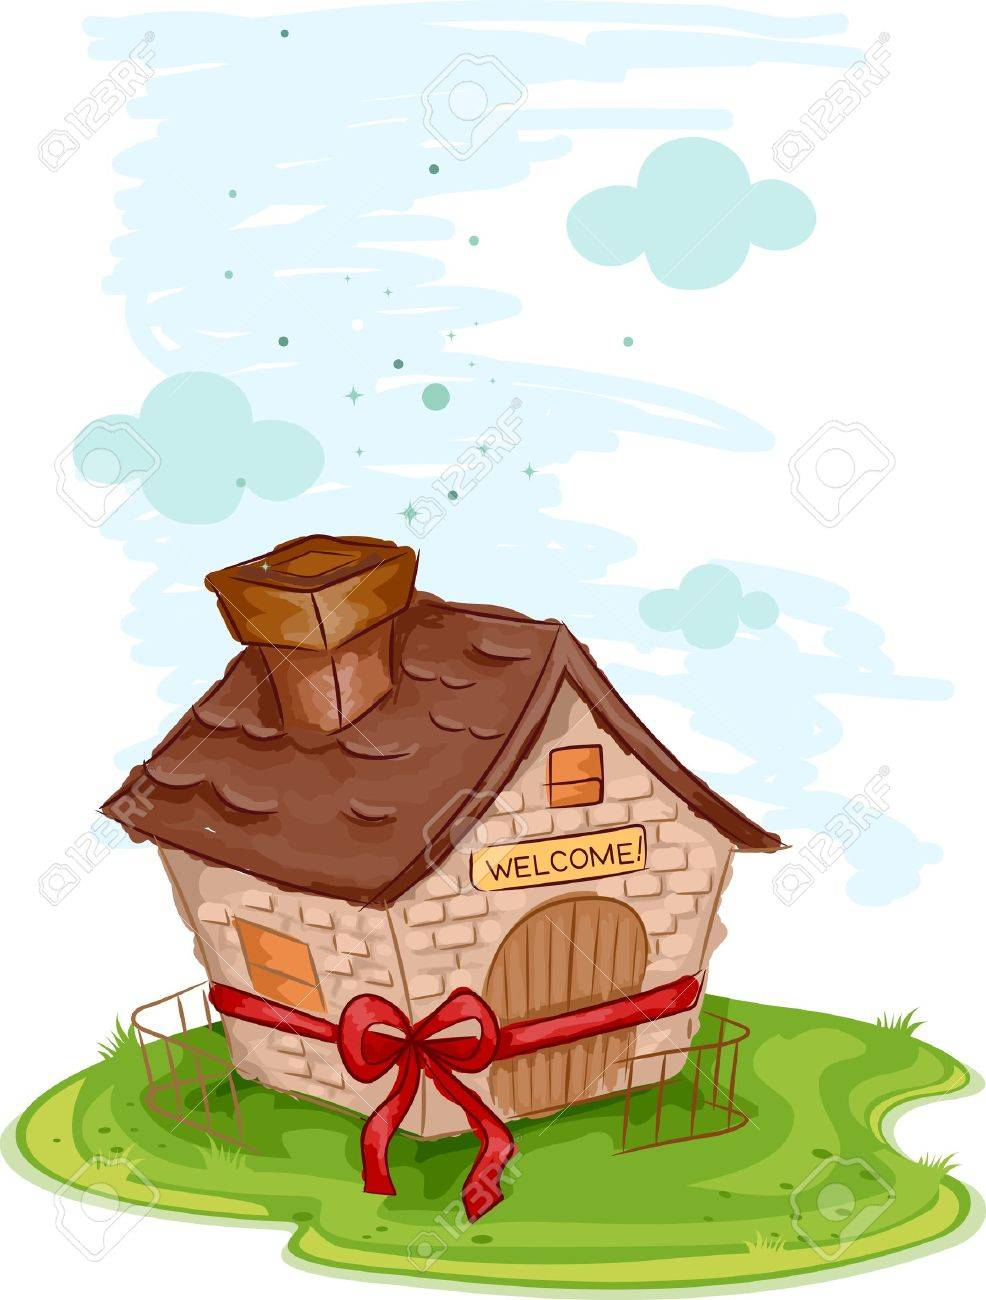 Illustration Of A New House Tied With A Ribbon Stock Photo - New home clipart